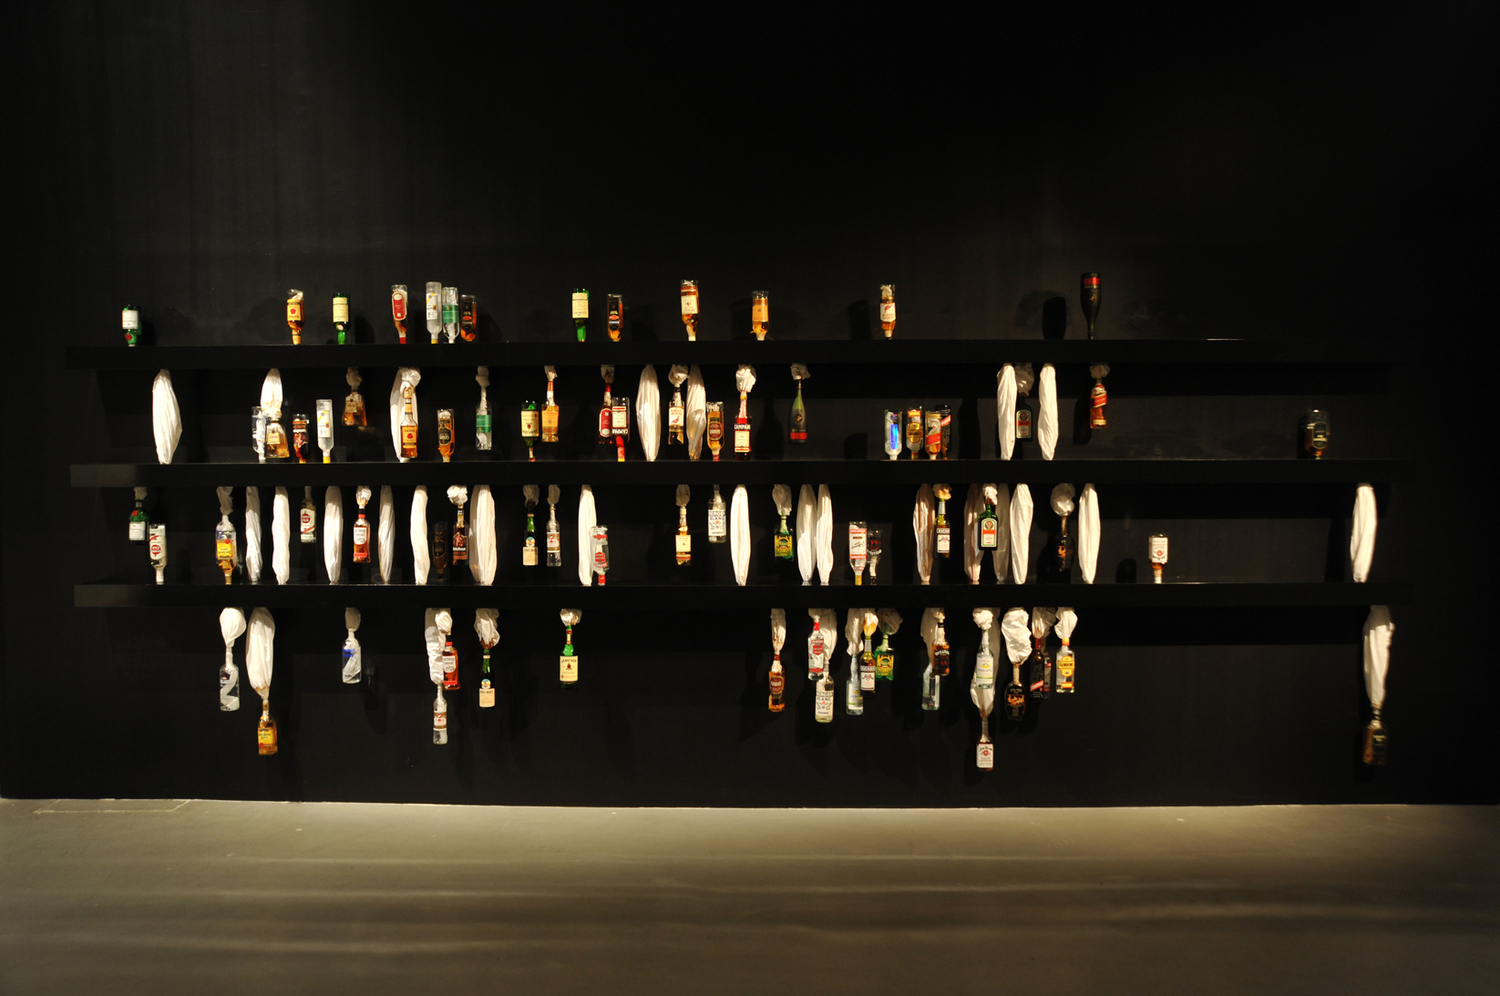 SWEAT , 2010, Full liquor bottles, bed sheets and shelves, Dimensions variable